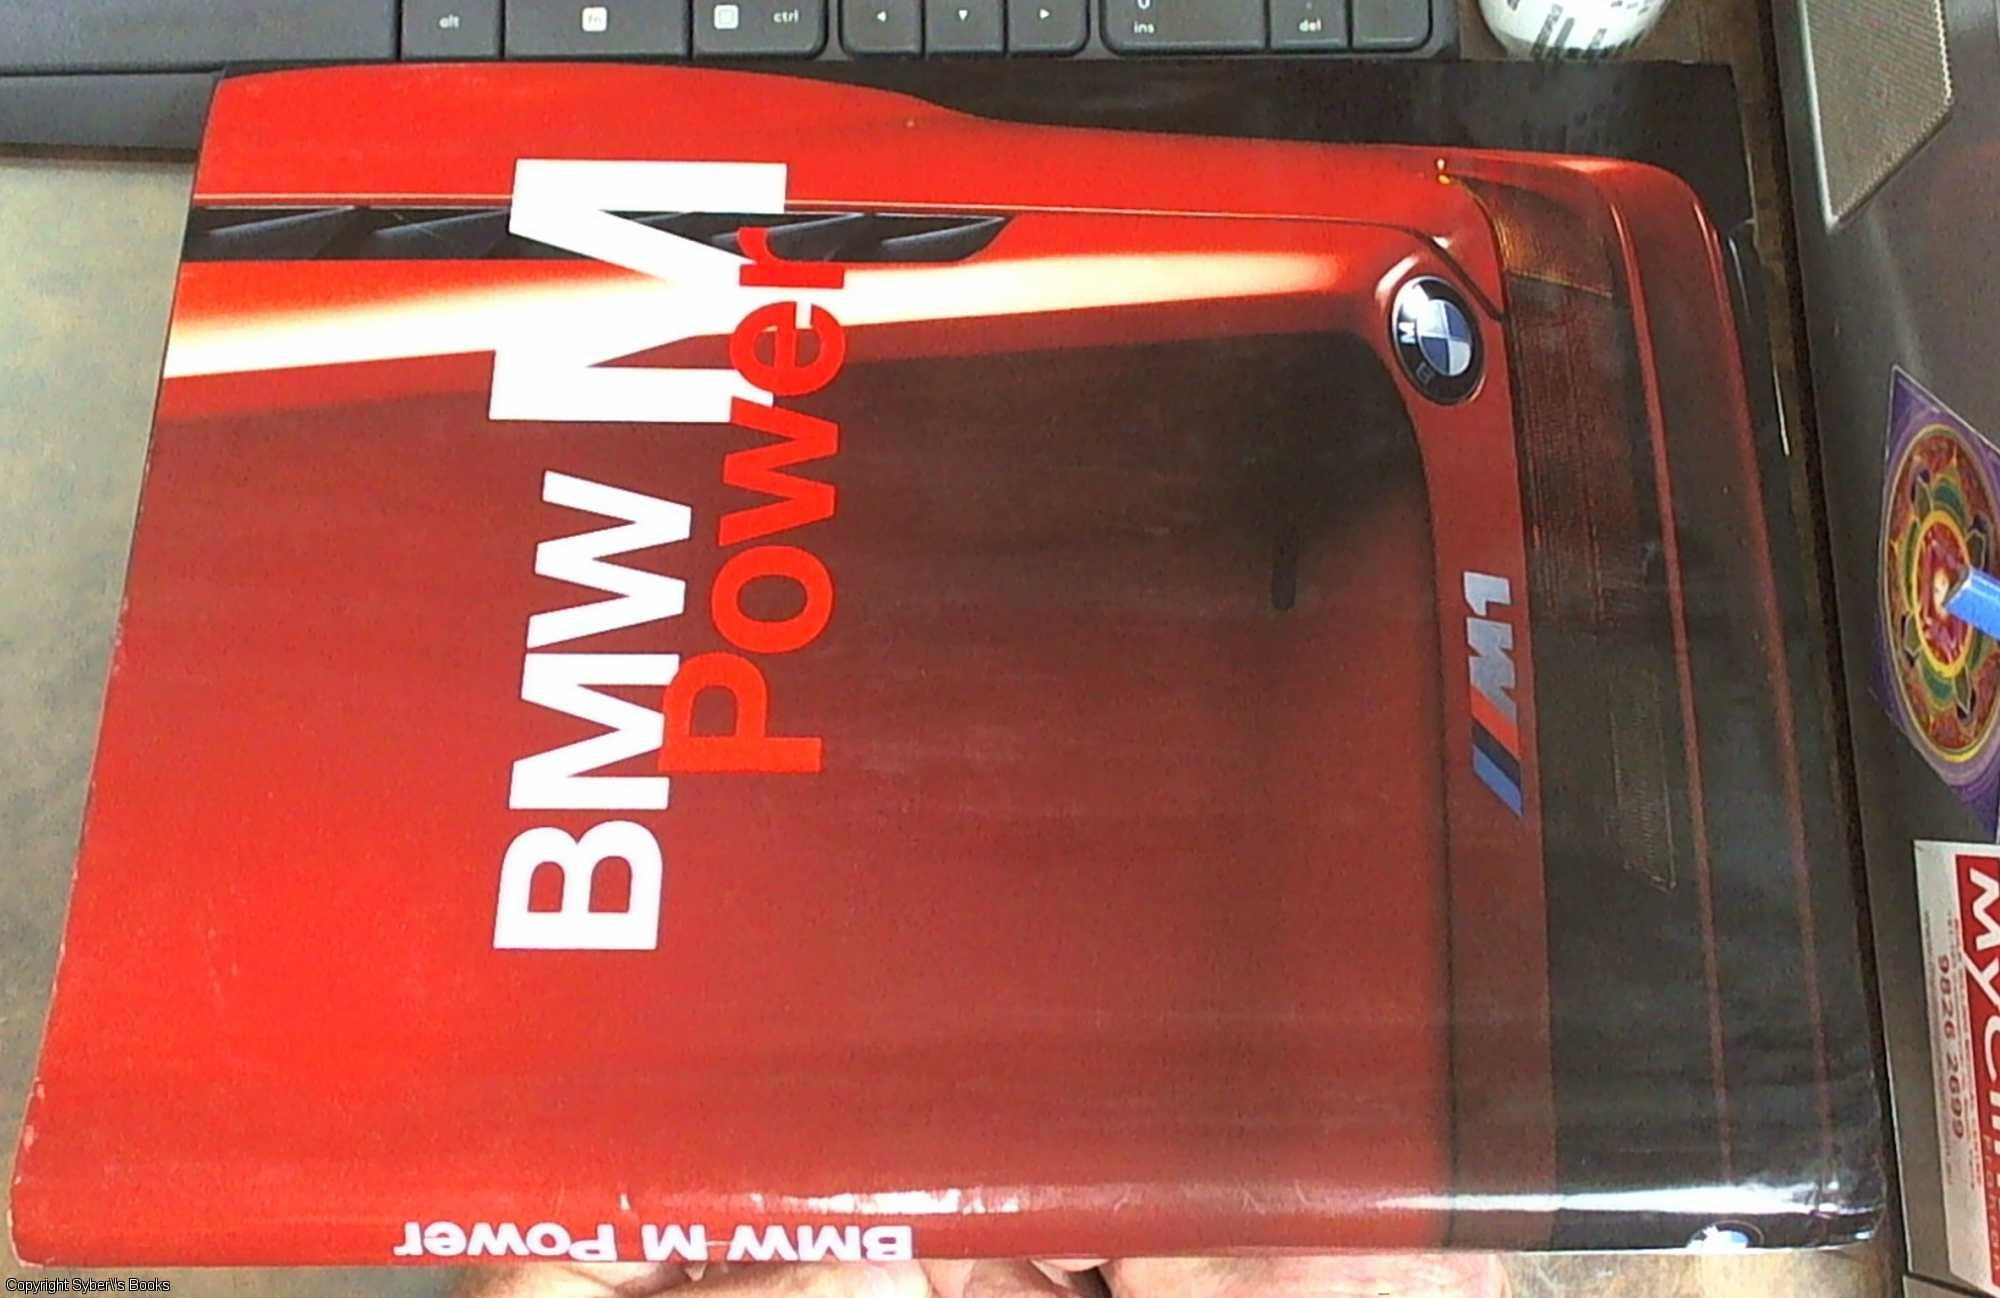 BMW M power Appelhans, MARKUS  Project manager [Very Good] [Hardcover] (bi_22927163195) photo